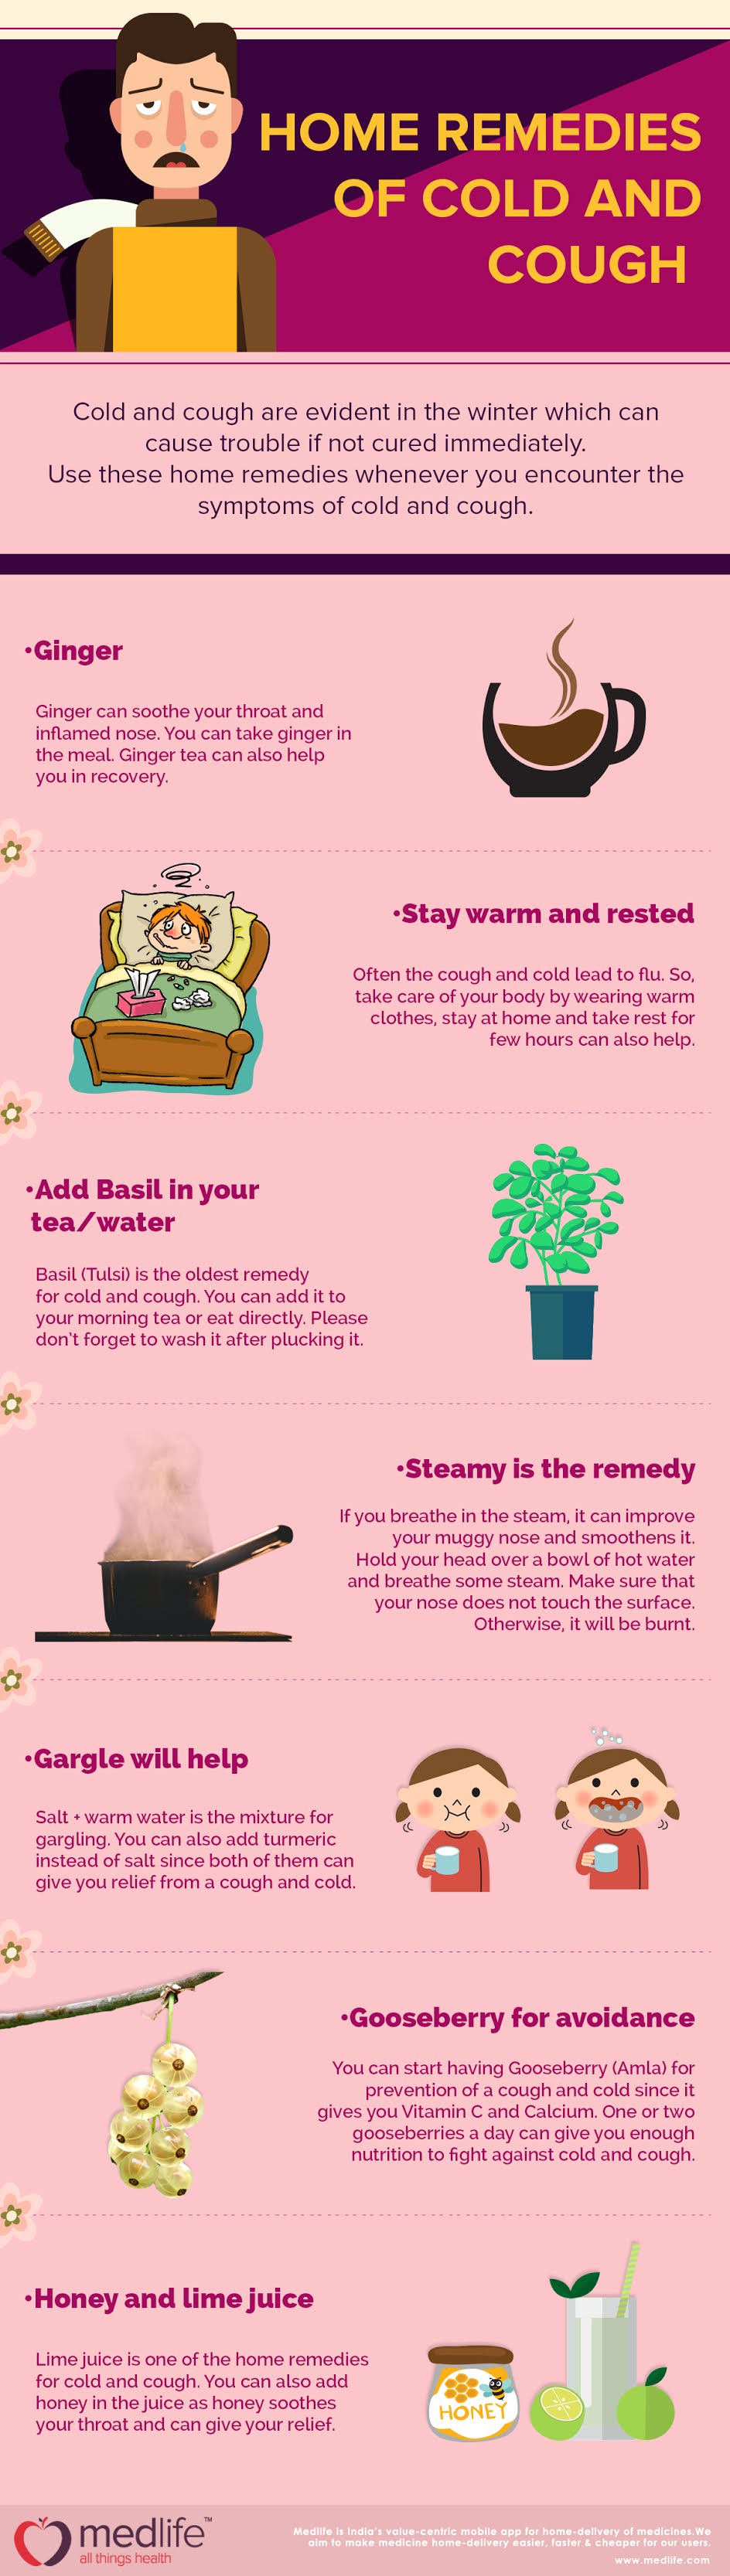 Home Remedies of Cold and Cough #infographic #Health #Cough #Cold and Cough #Home Remedies #Remedies